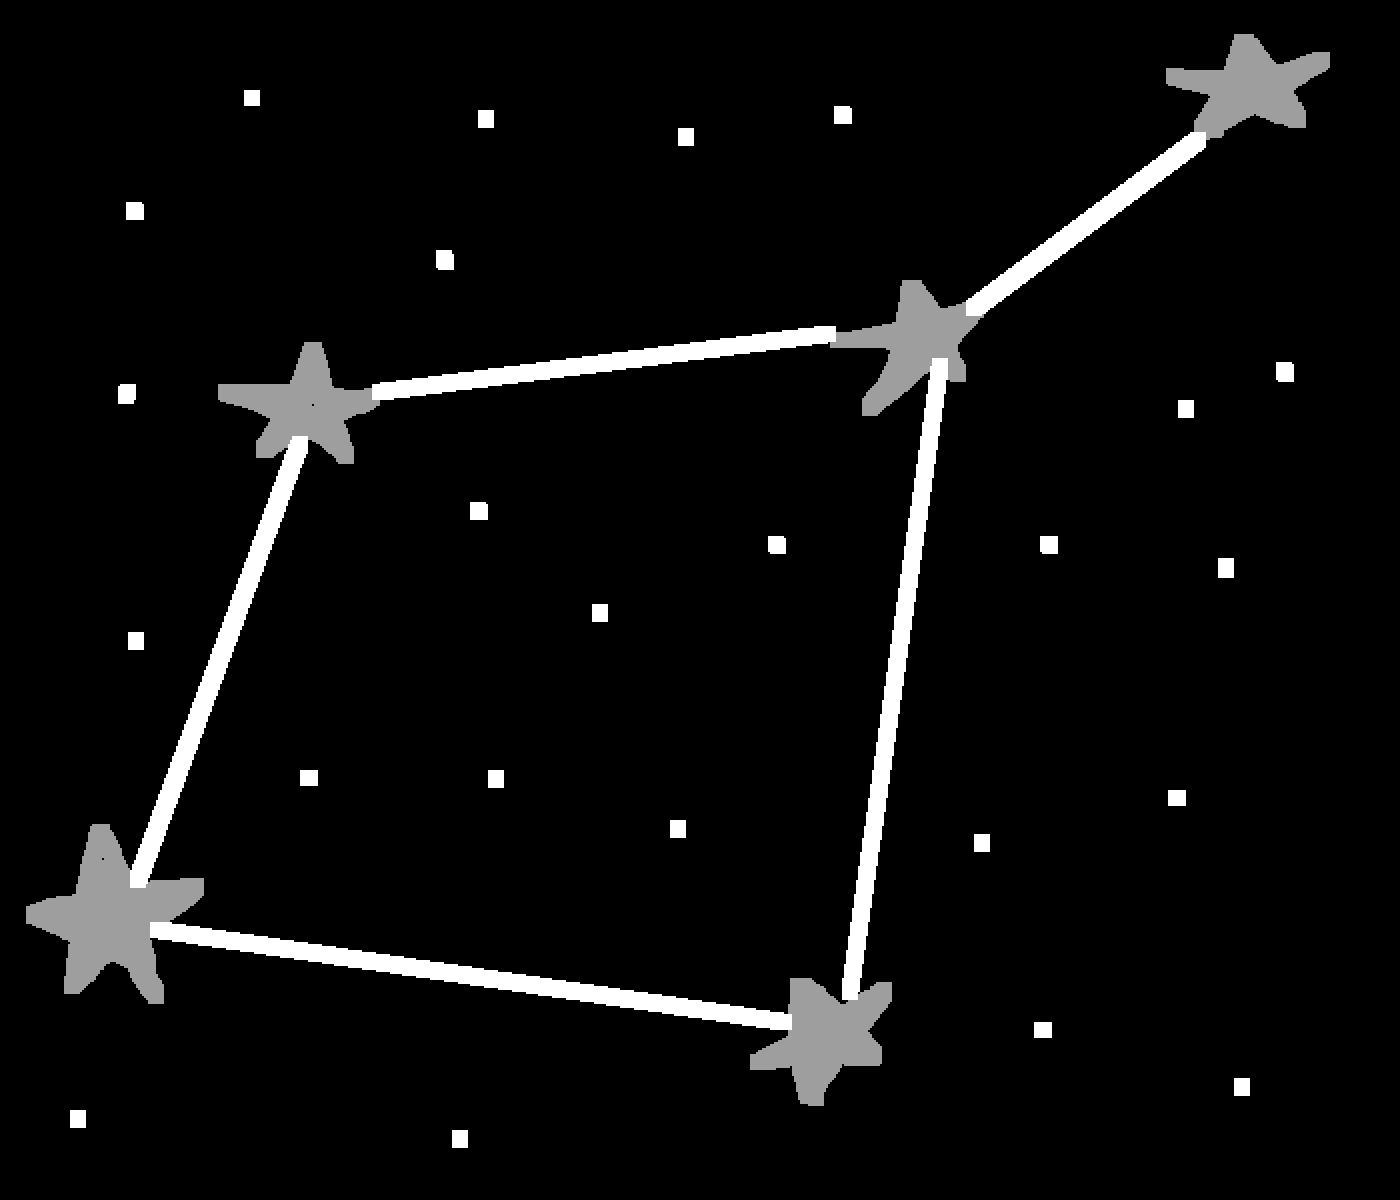 Leo Minor (constellation) by SpookyMiniLime